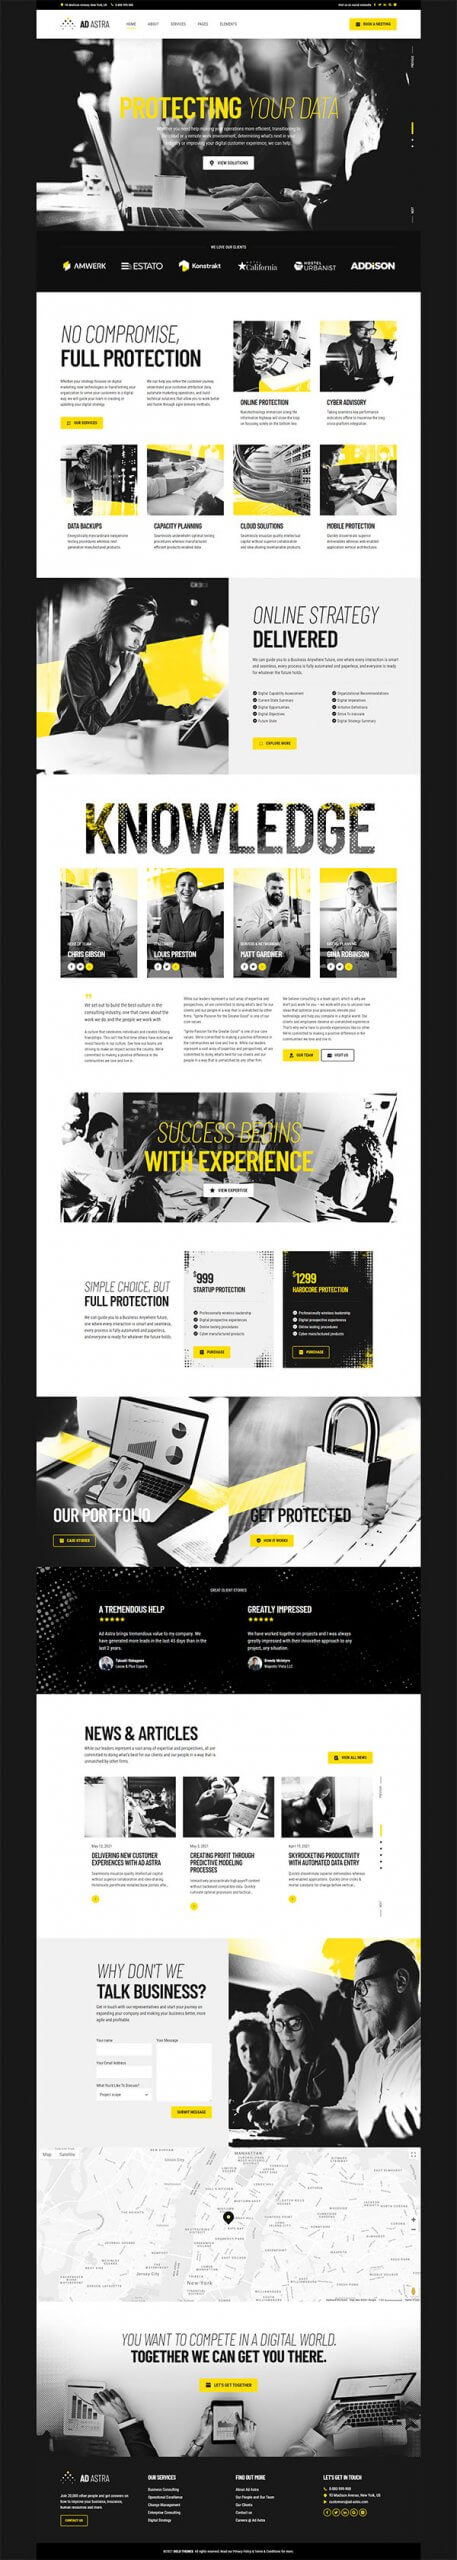 http://ad-astra.bold-themes.com/wp-content/uploads/2021/07/Demo-5-Mono-scaled-1.jpg